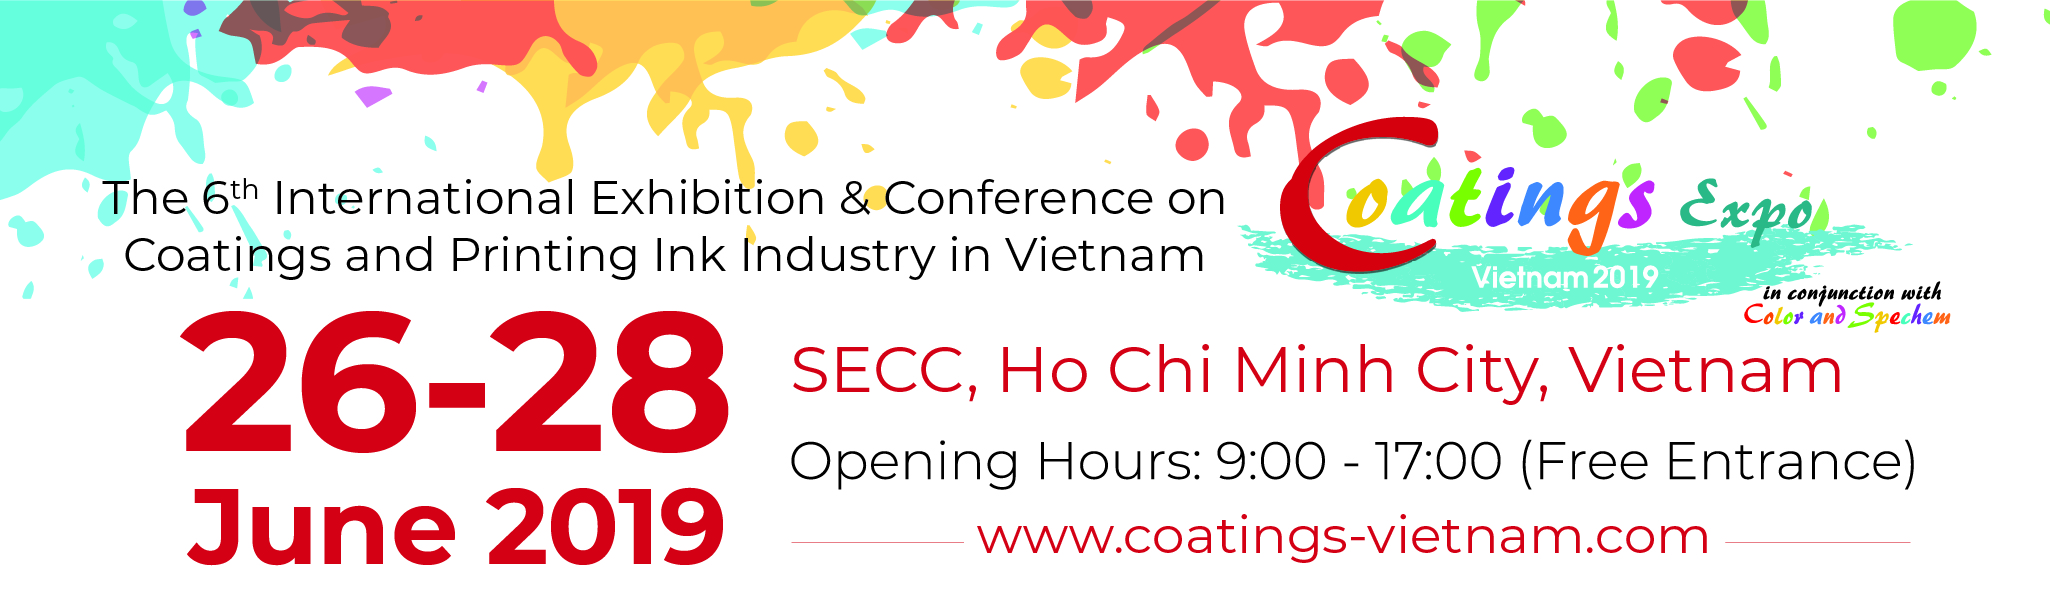 Coatings Expo Vietnam 2019